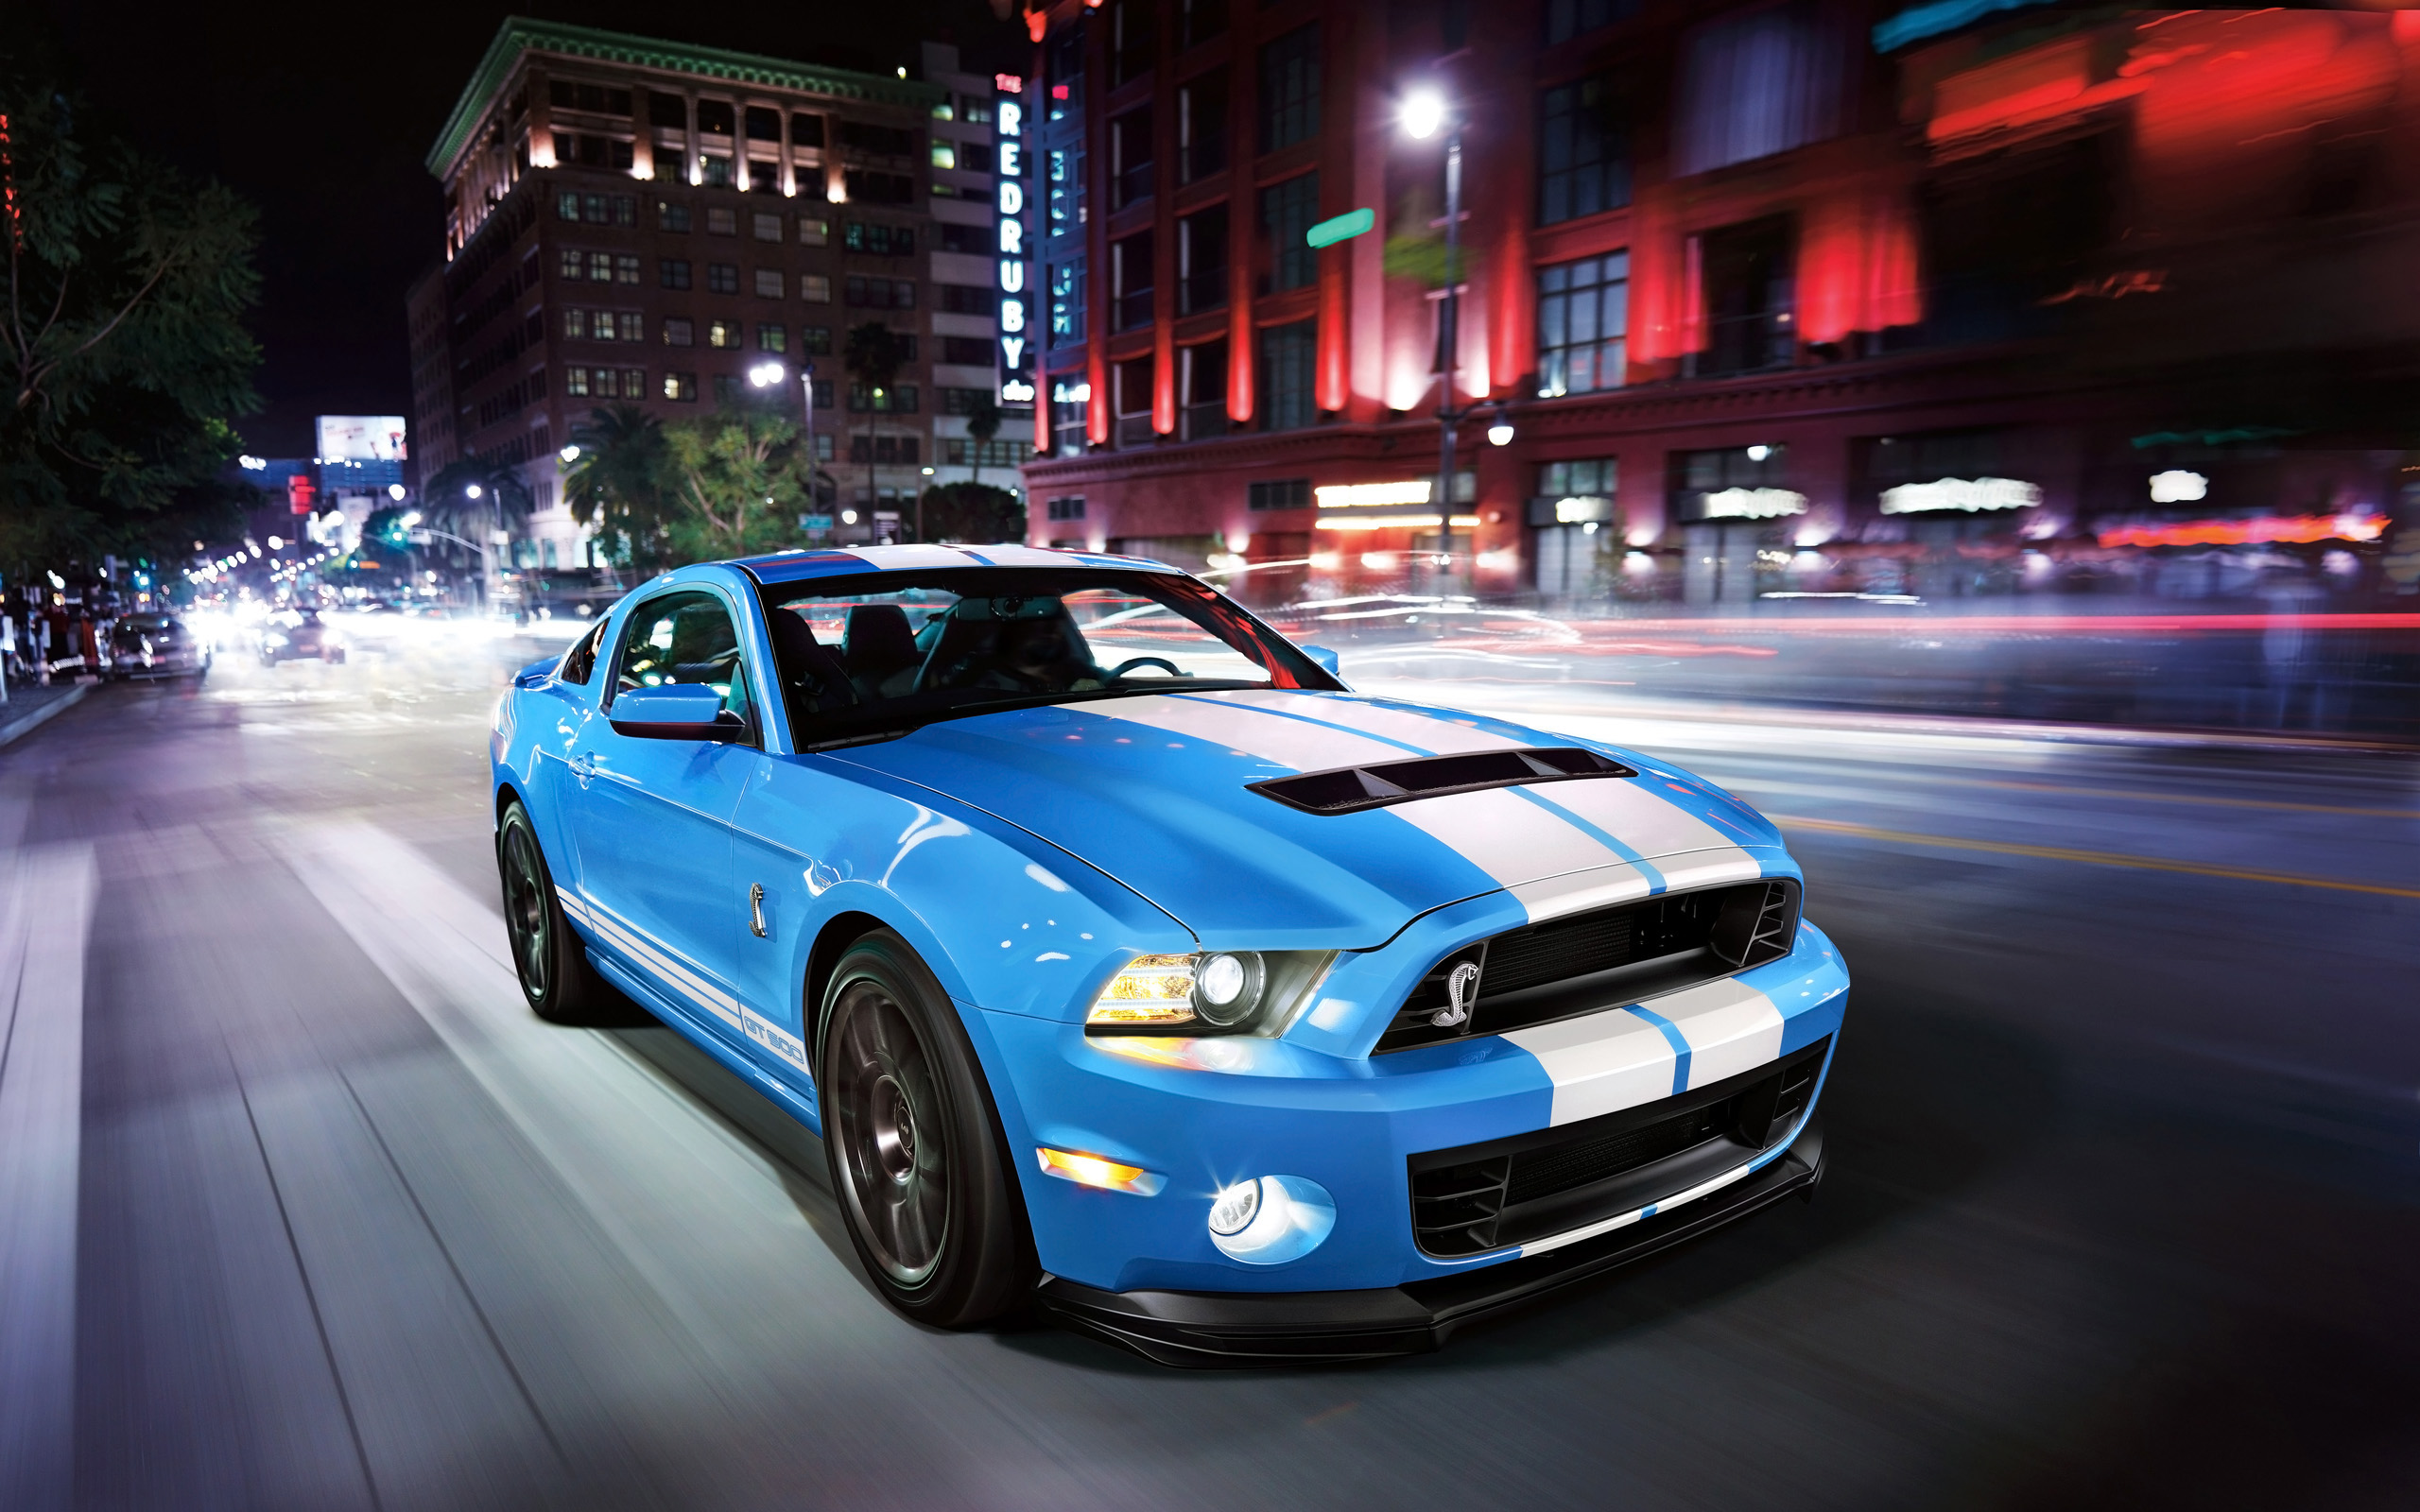 Ford Mustang Shelby GT500 Muscle Car Vehicle Wallpapers ID598434